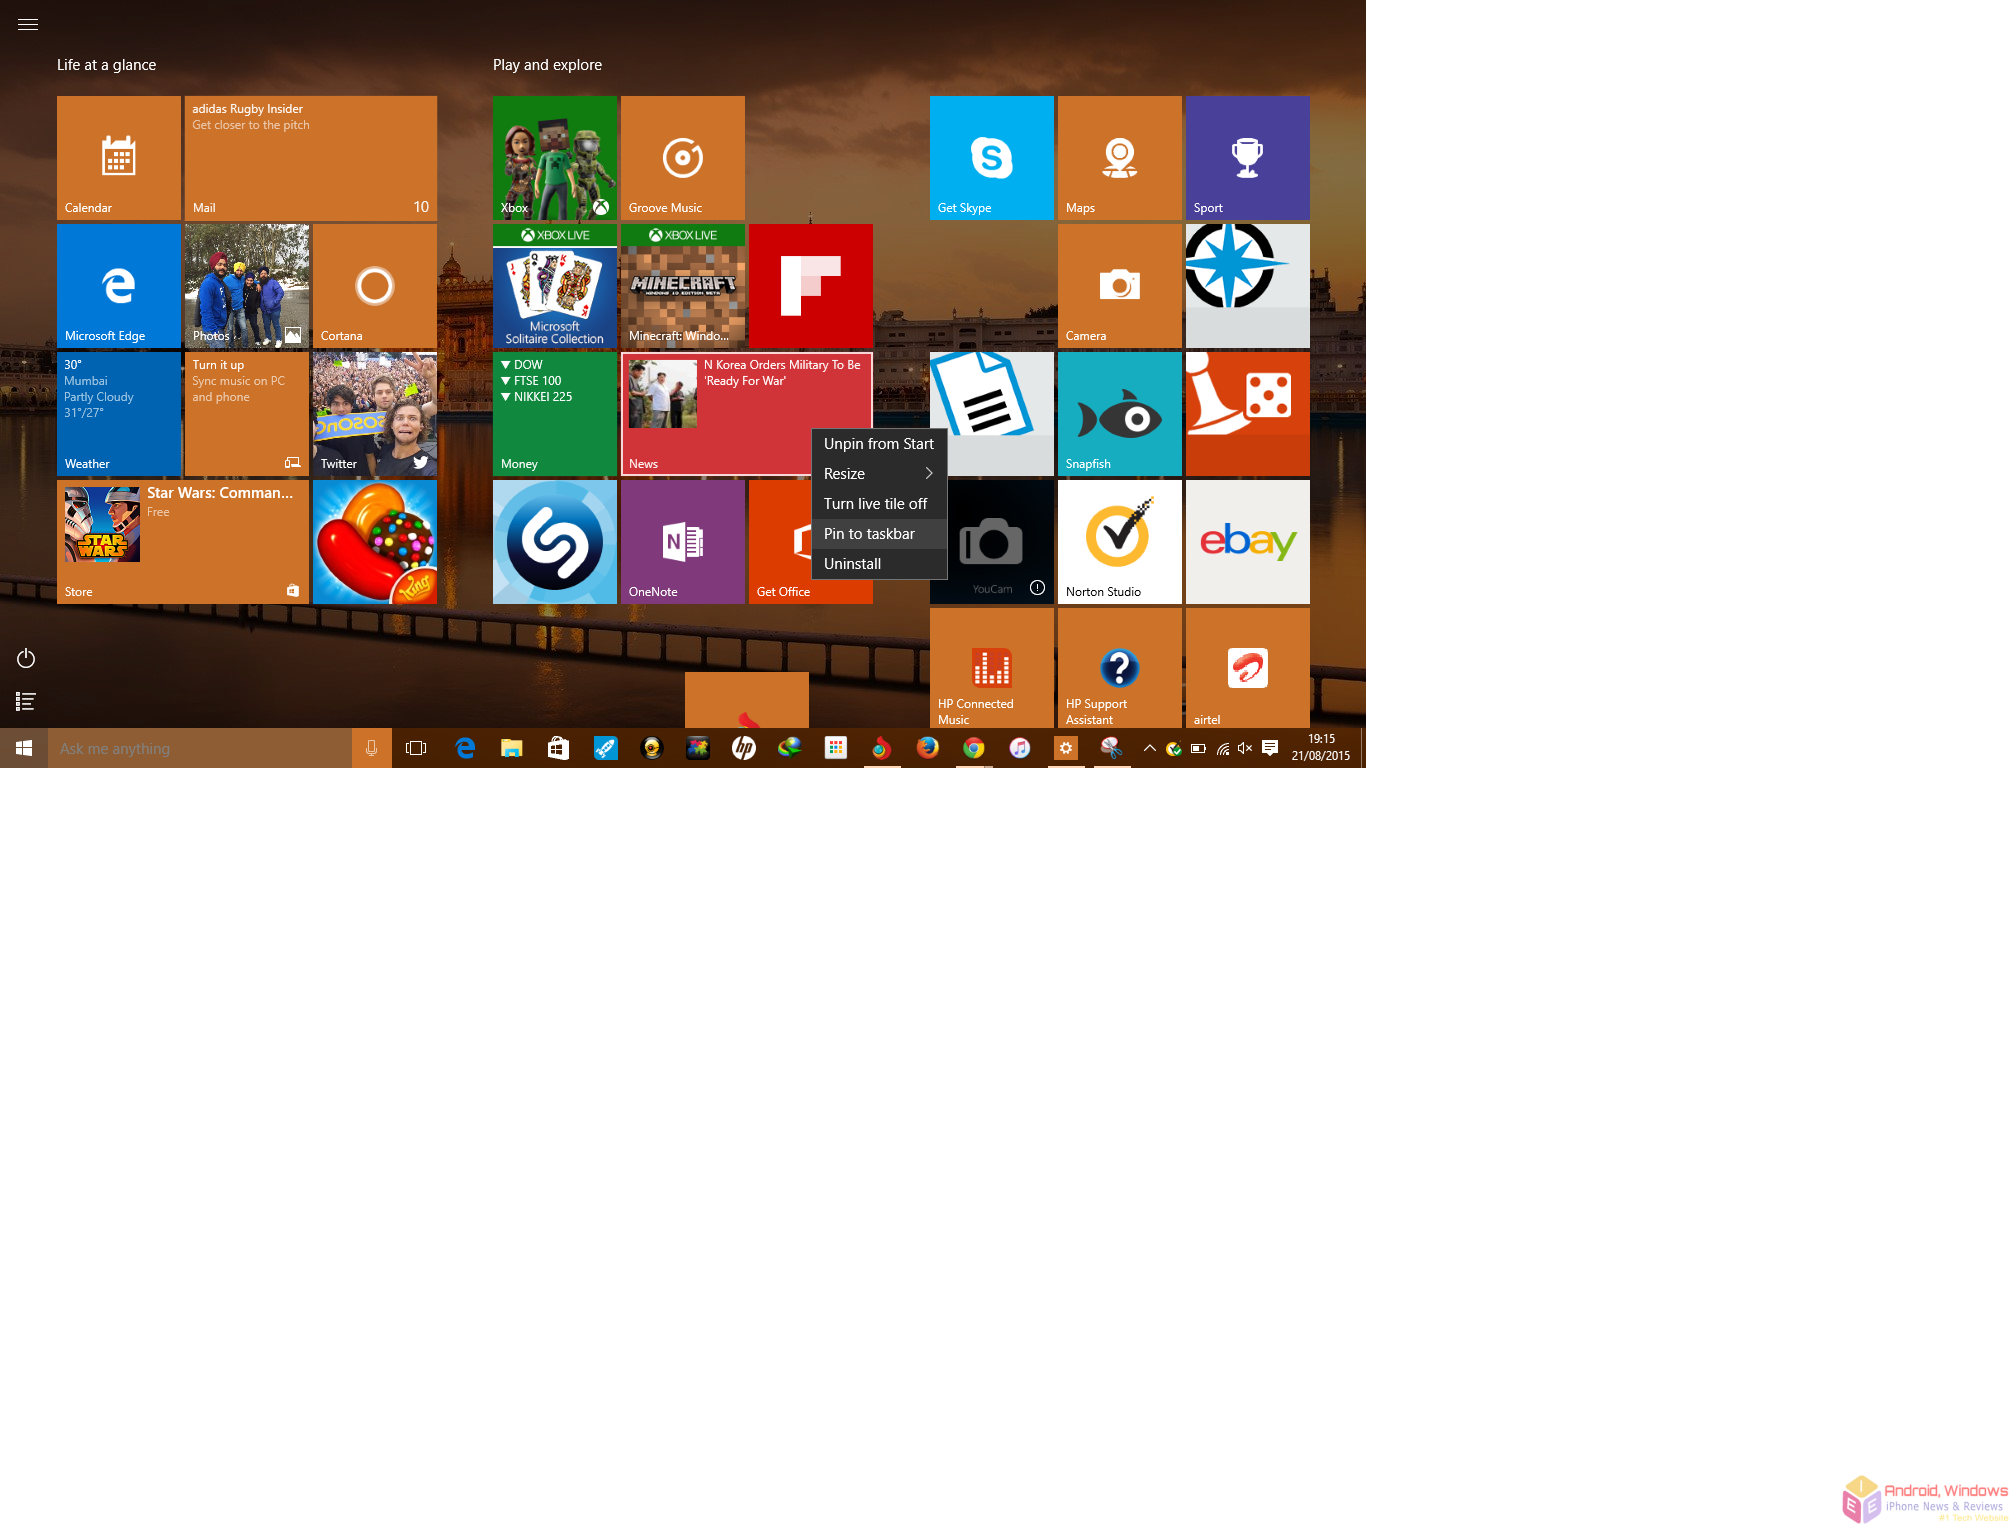 Windows 10 How To: Customize the Start Menu